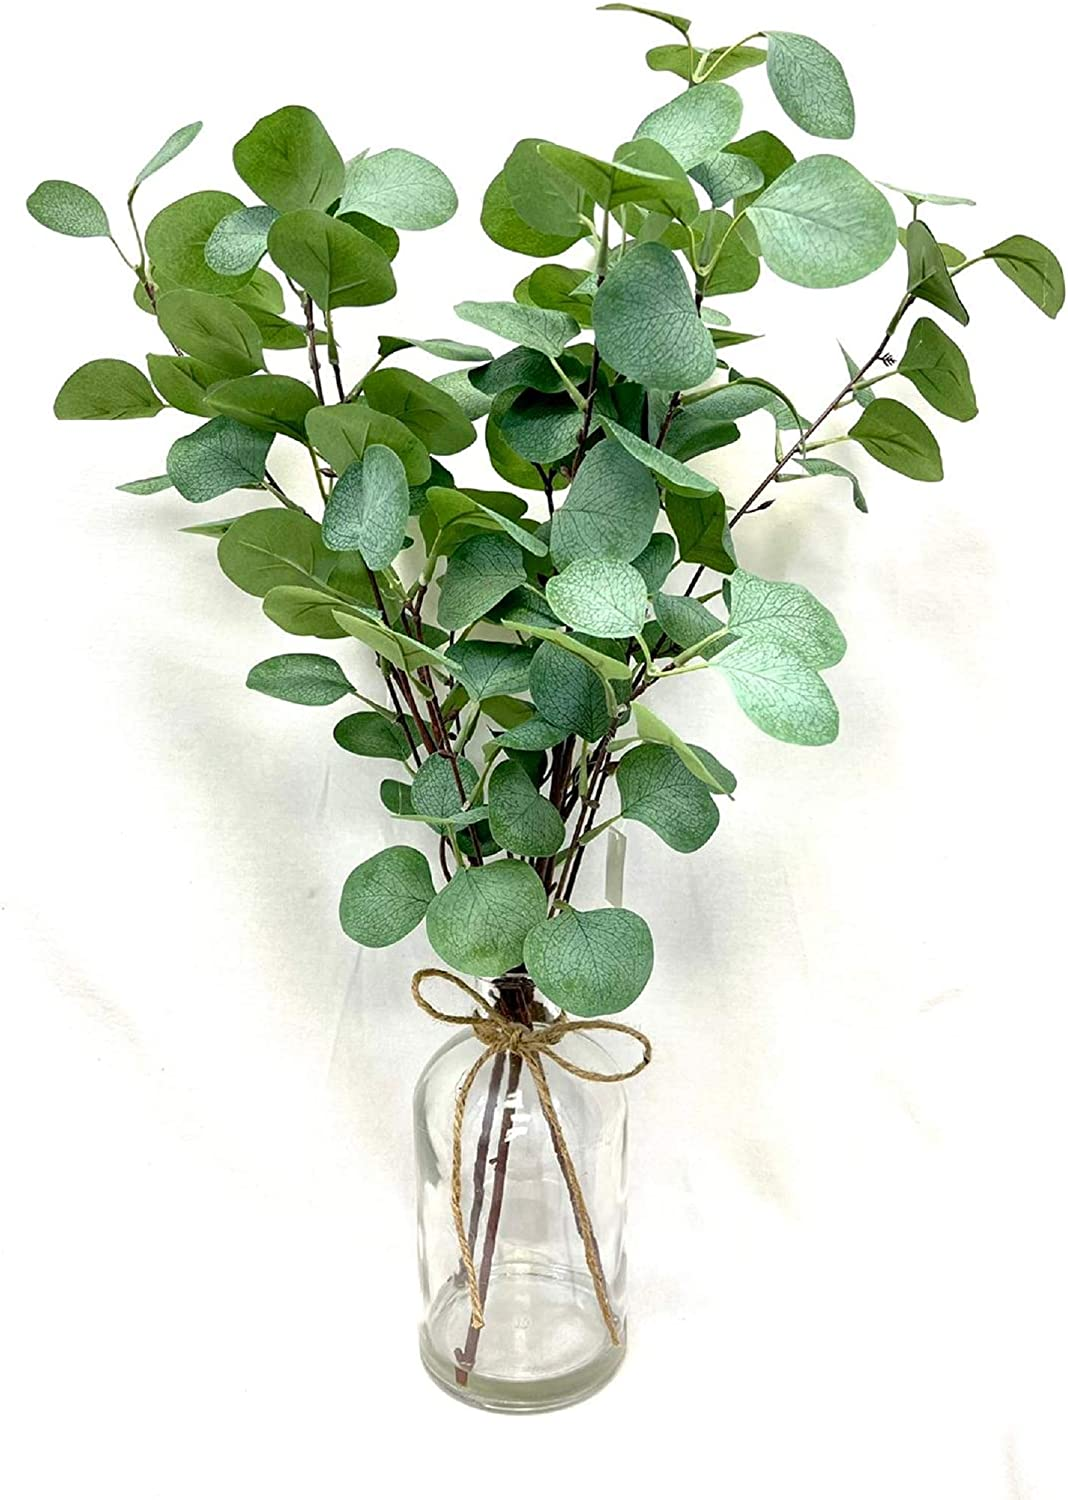 Faux Eucalyptus Leaves in Glass vase with Burlap for Home Shelf Office Wedding Tabletop Decor